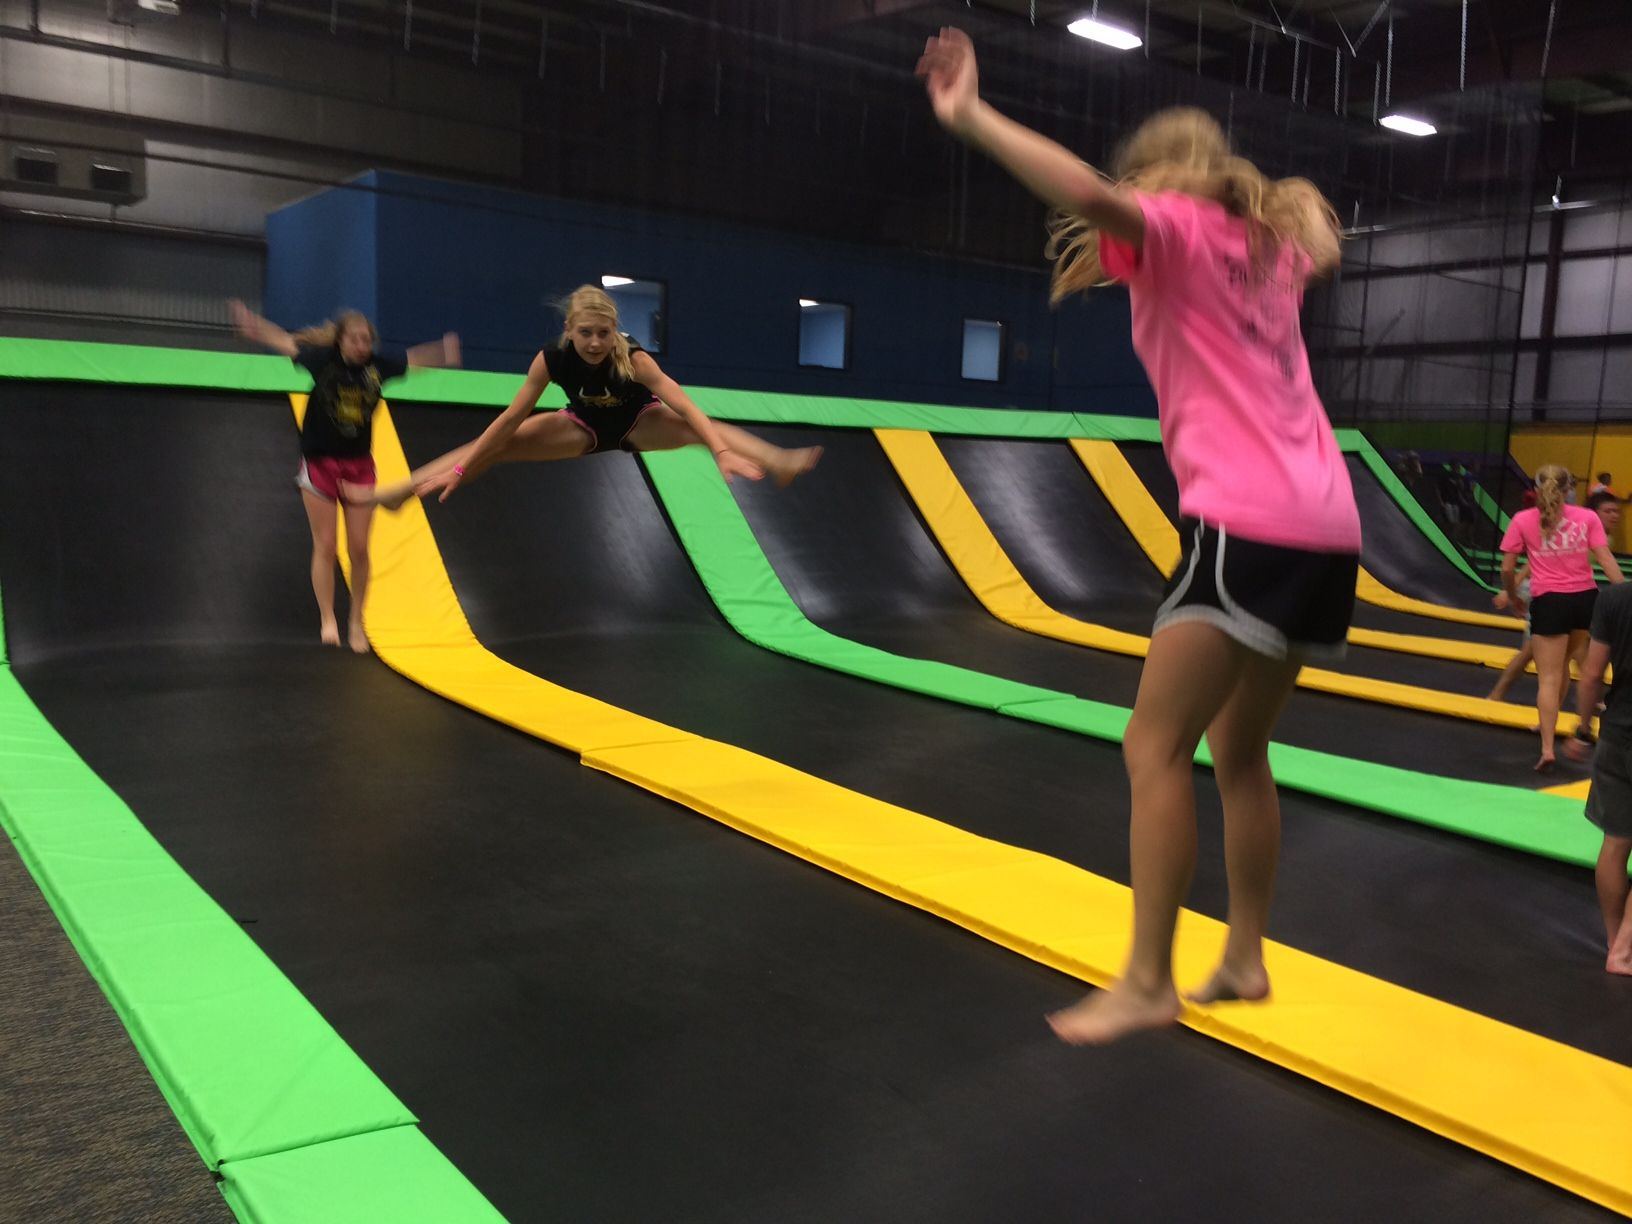 Flippin' out. (¬ ‿ ¬ ) Trampoline park, Private event